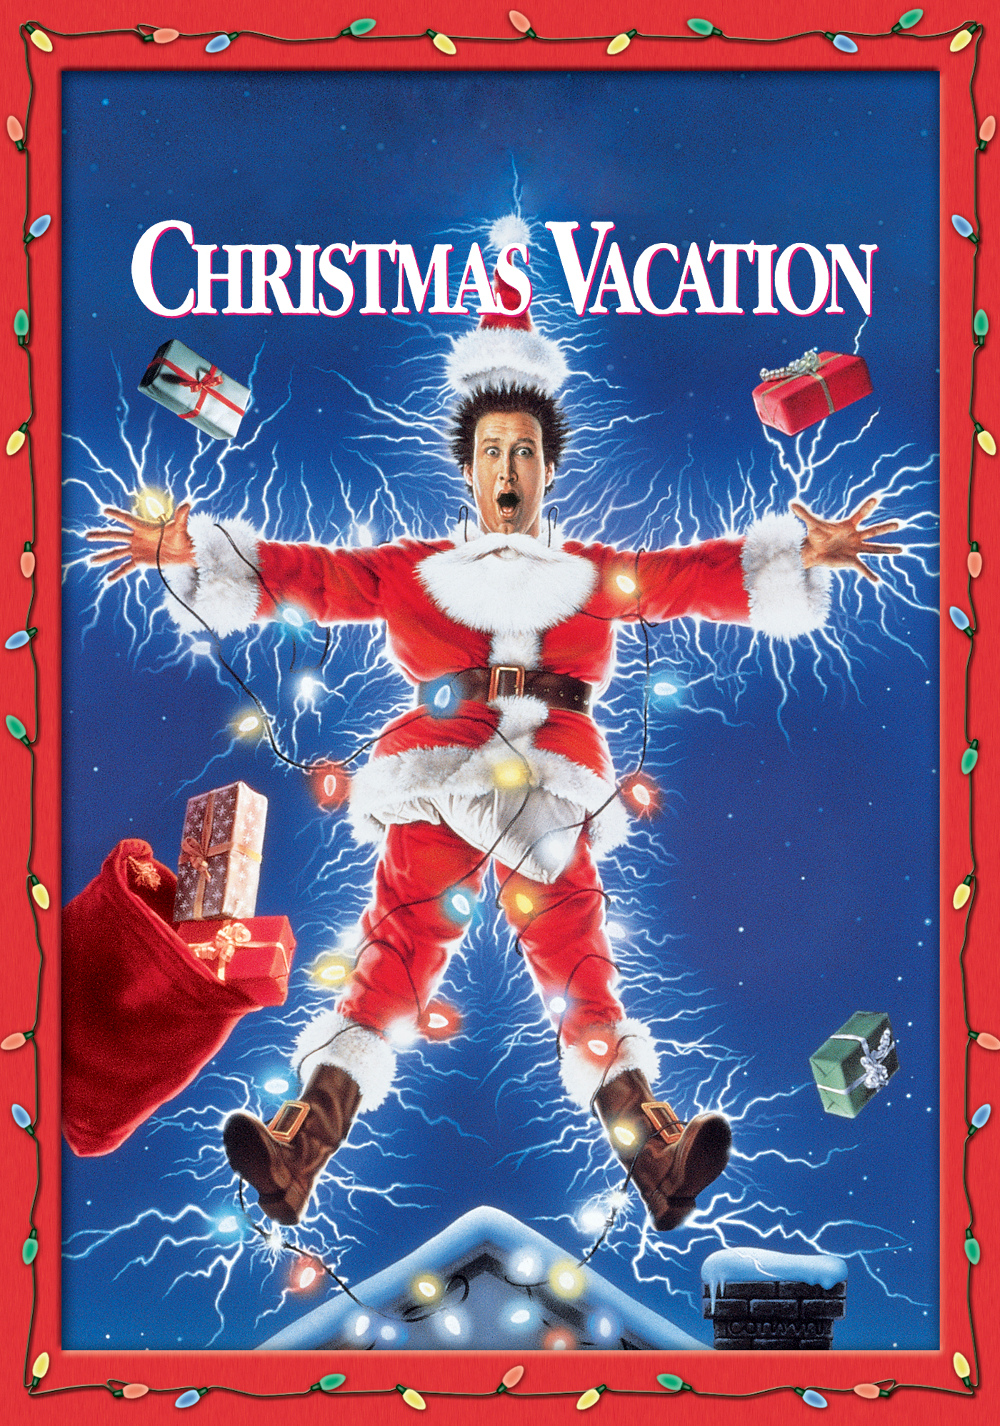 Free Vacation Movie Cliparts, Download Free Clip Art, Free.